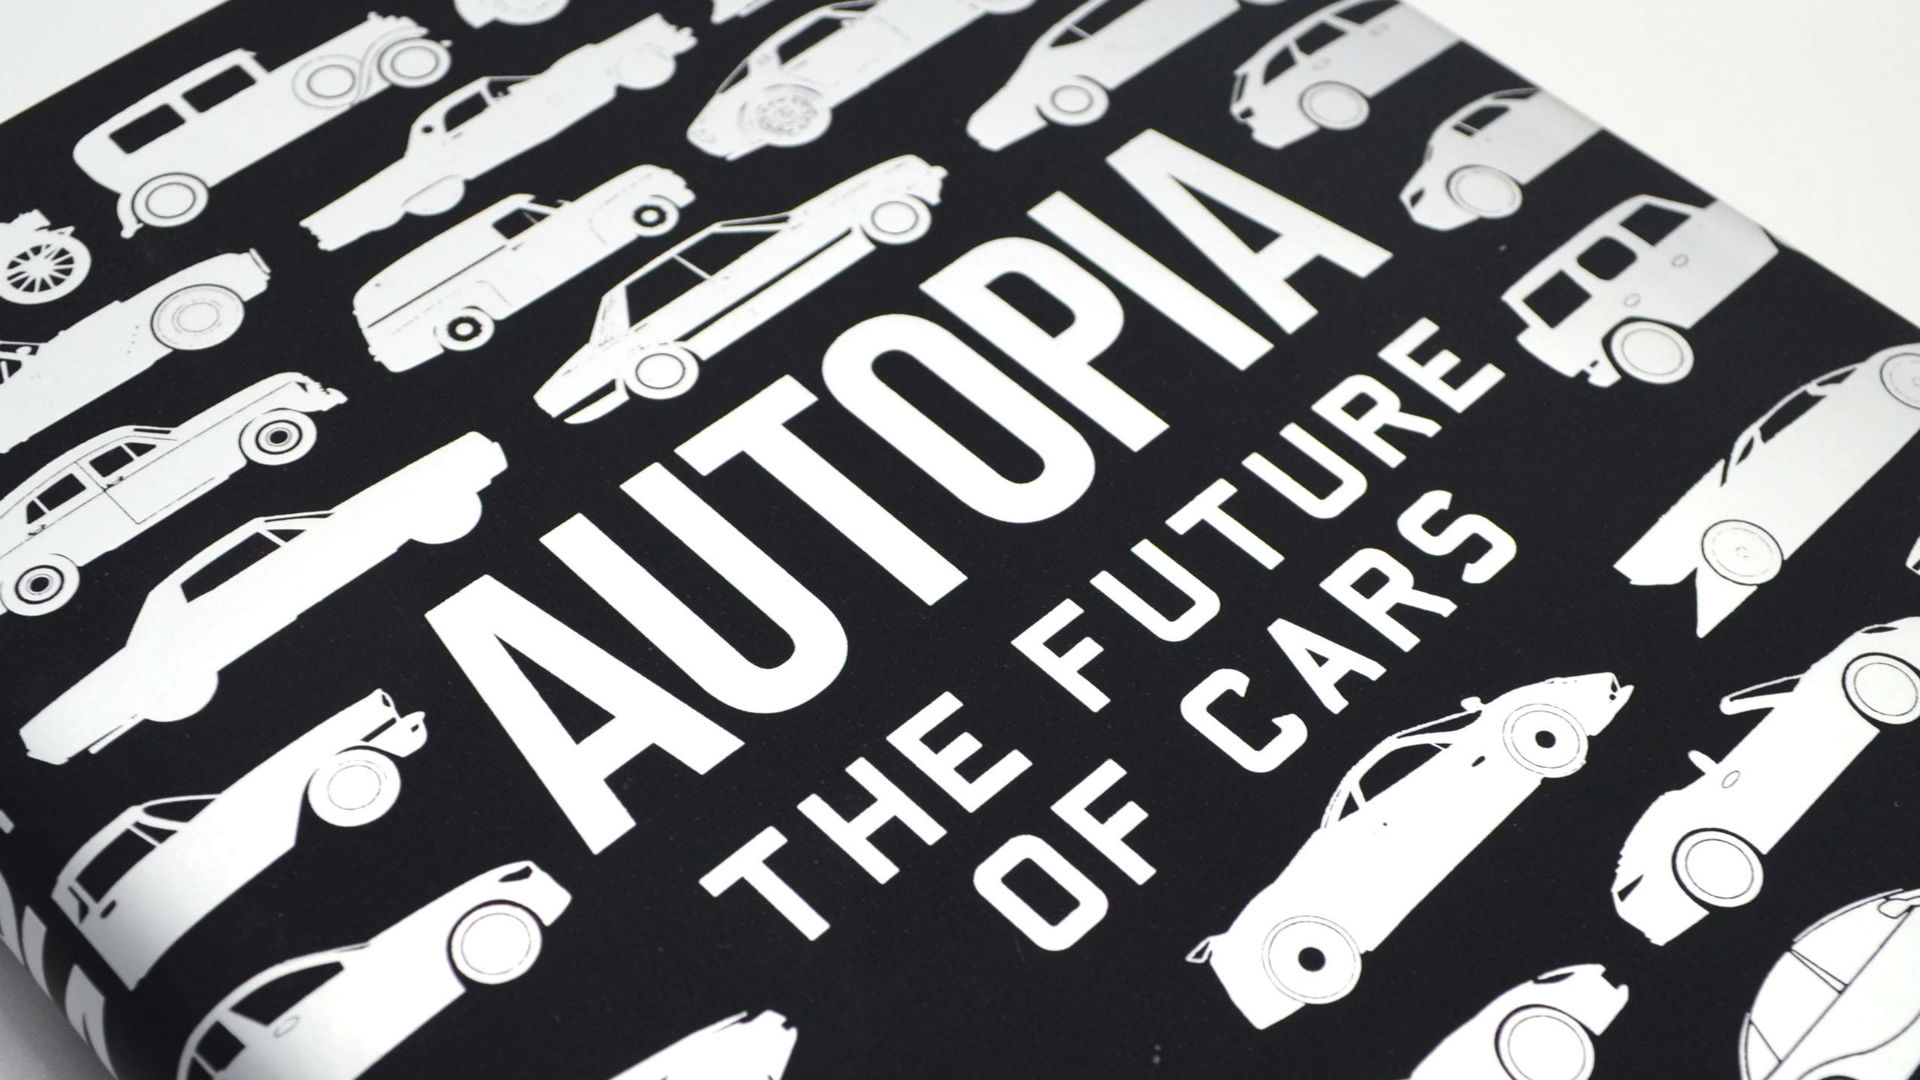 Autopia – The Future of Cars